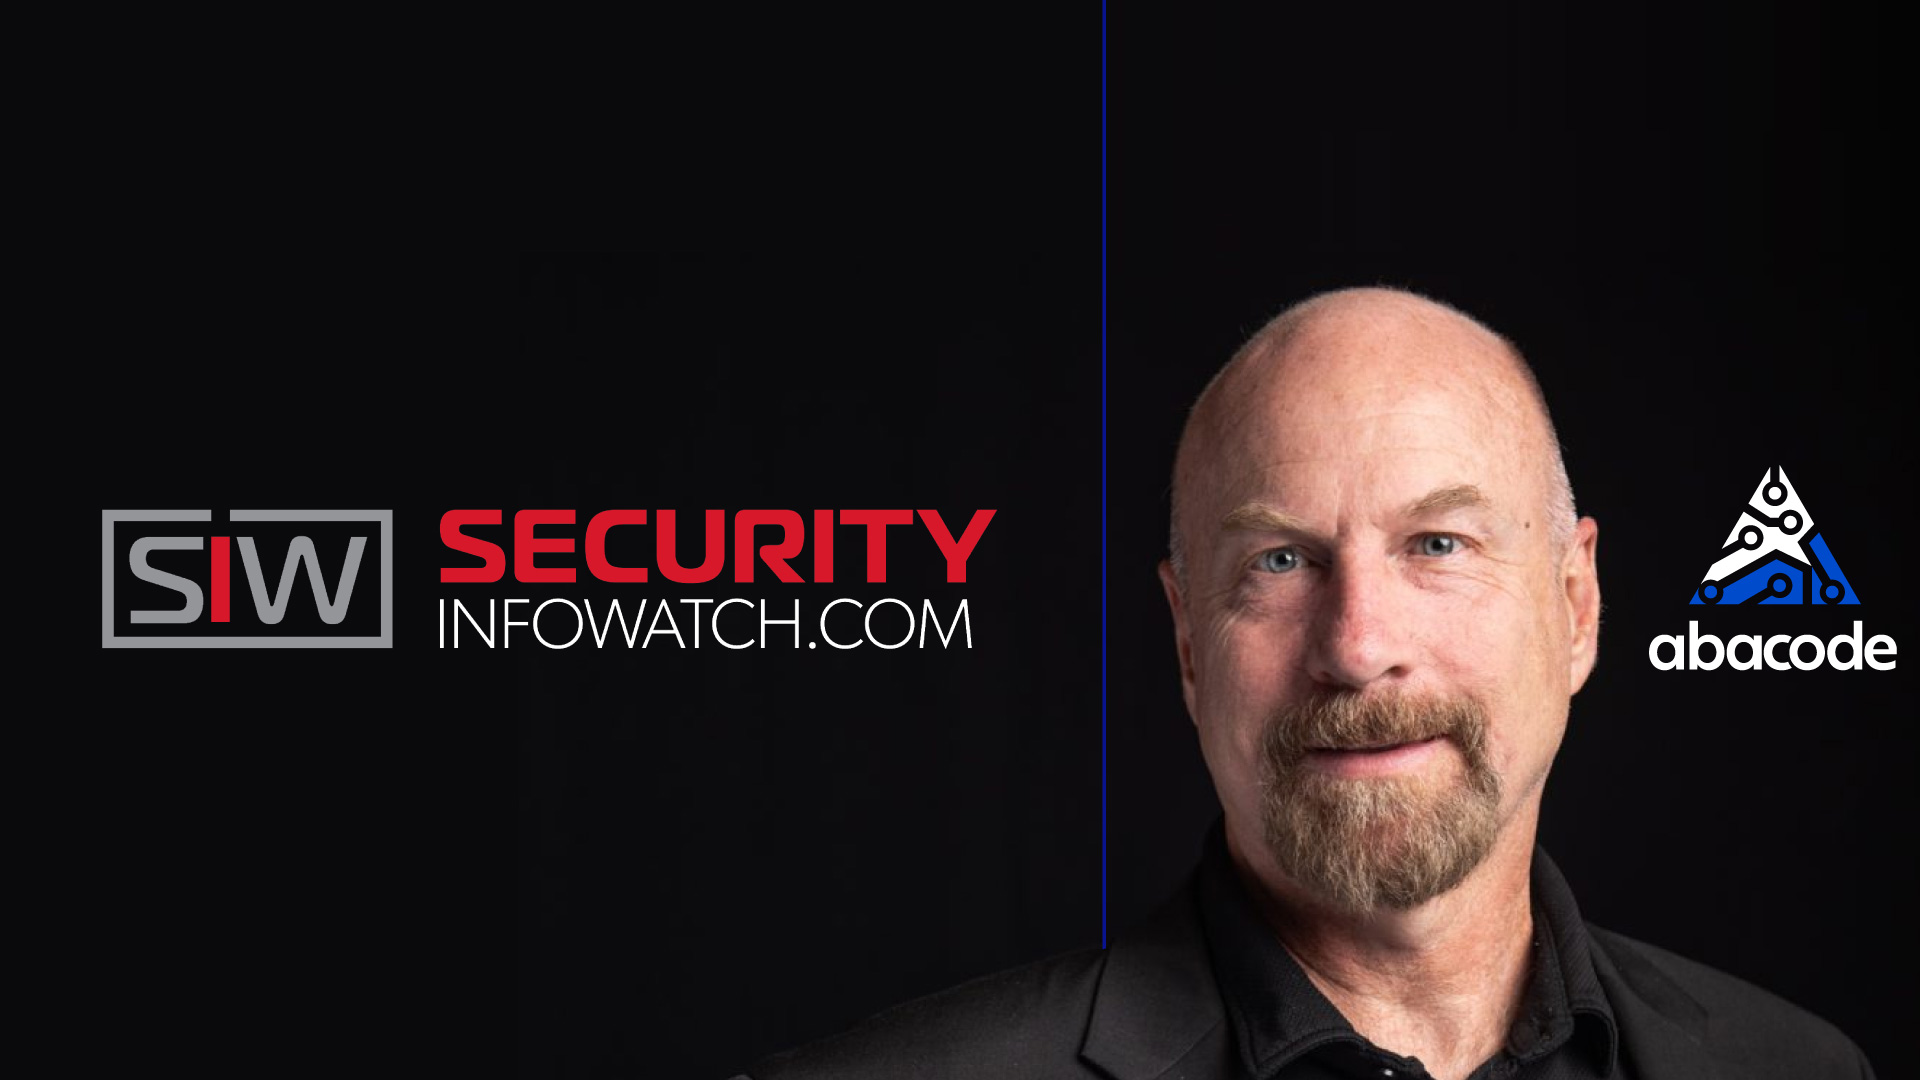 Security Infowatch Jeremy Rasmussen interview- Cybersecurity-as=a=Service Gains Traction- Abacode